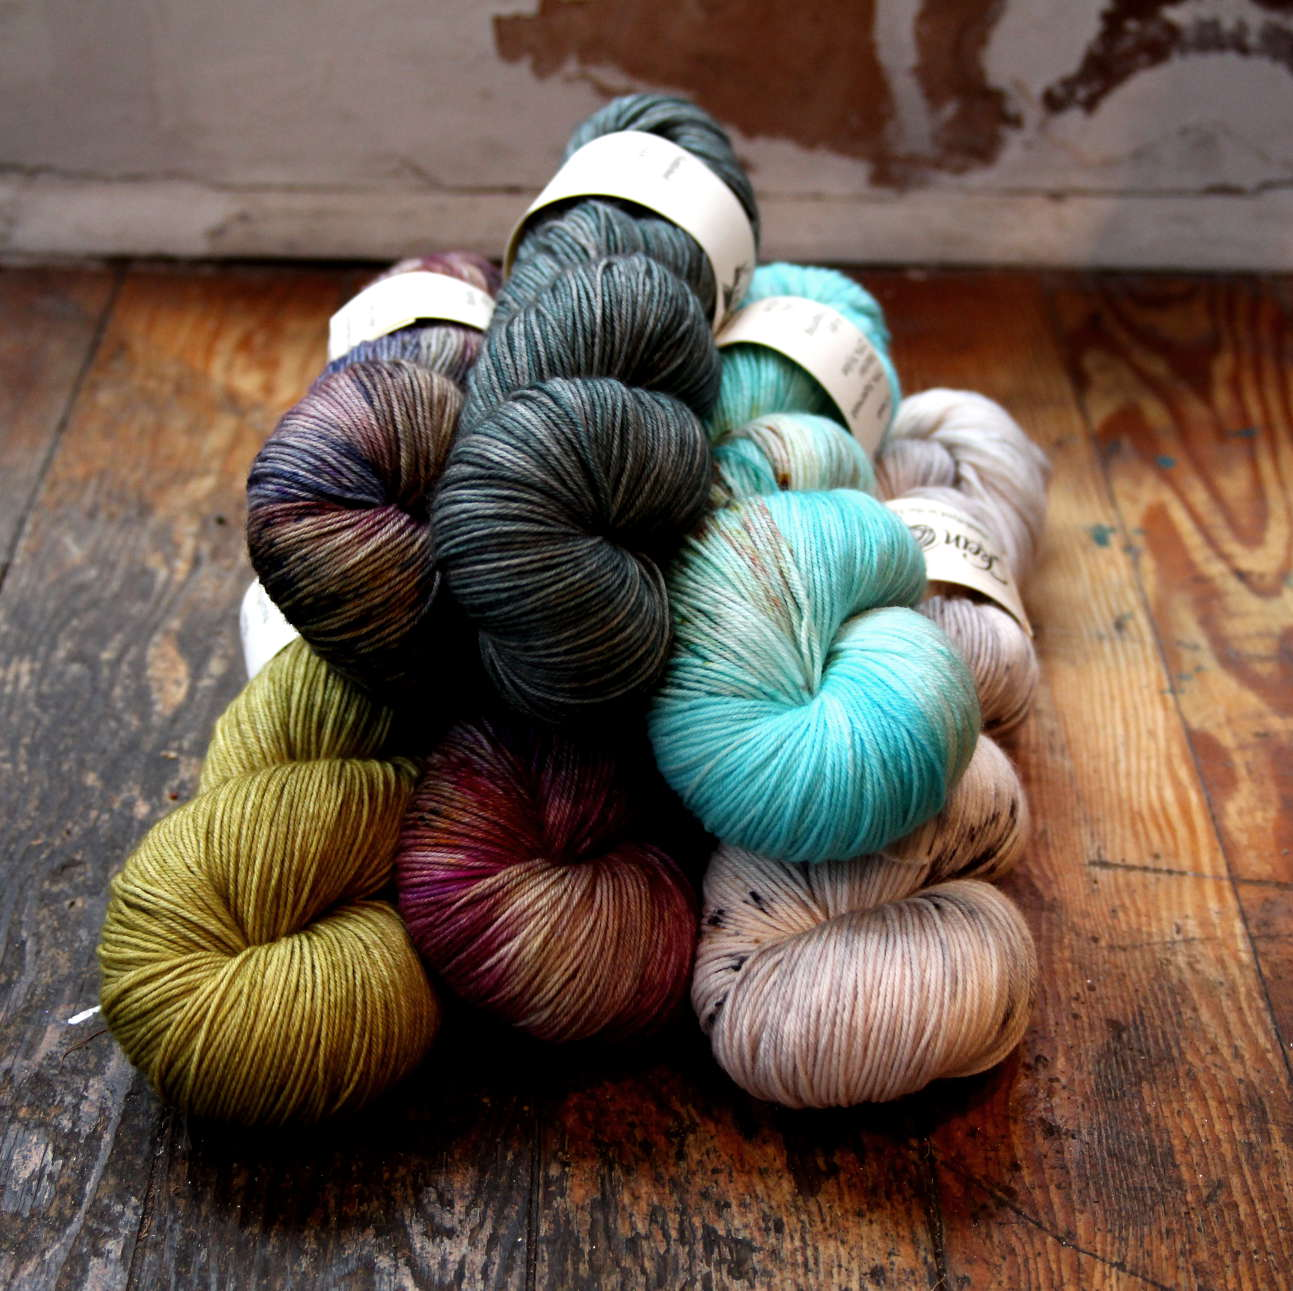 Skein Queen, Crush, 4ply, Merino / Nylon, Sock Yarn, Indie Dyer, Hand Dyed Yarn, Wool,